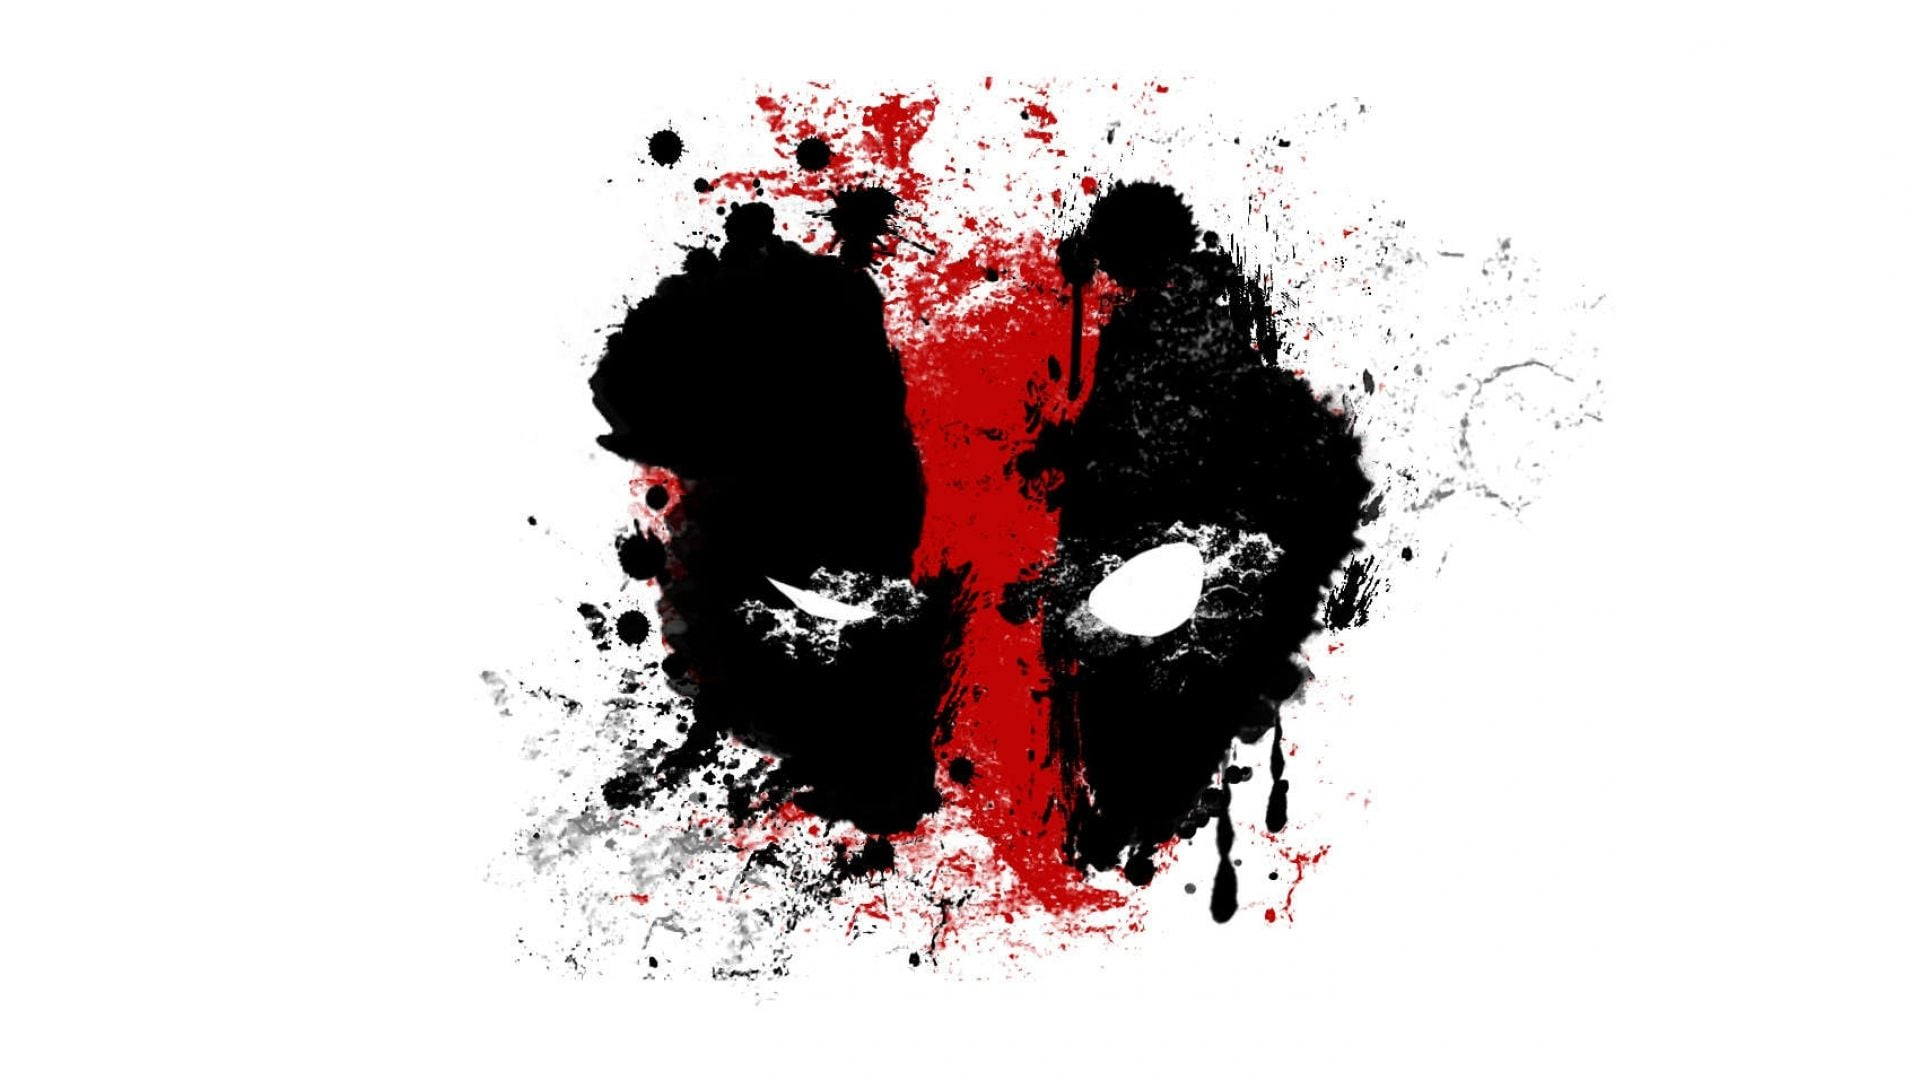 Image of Deadpool abstract